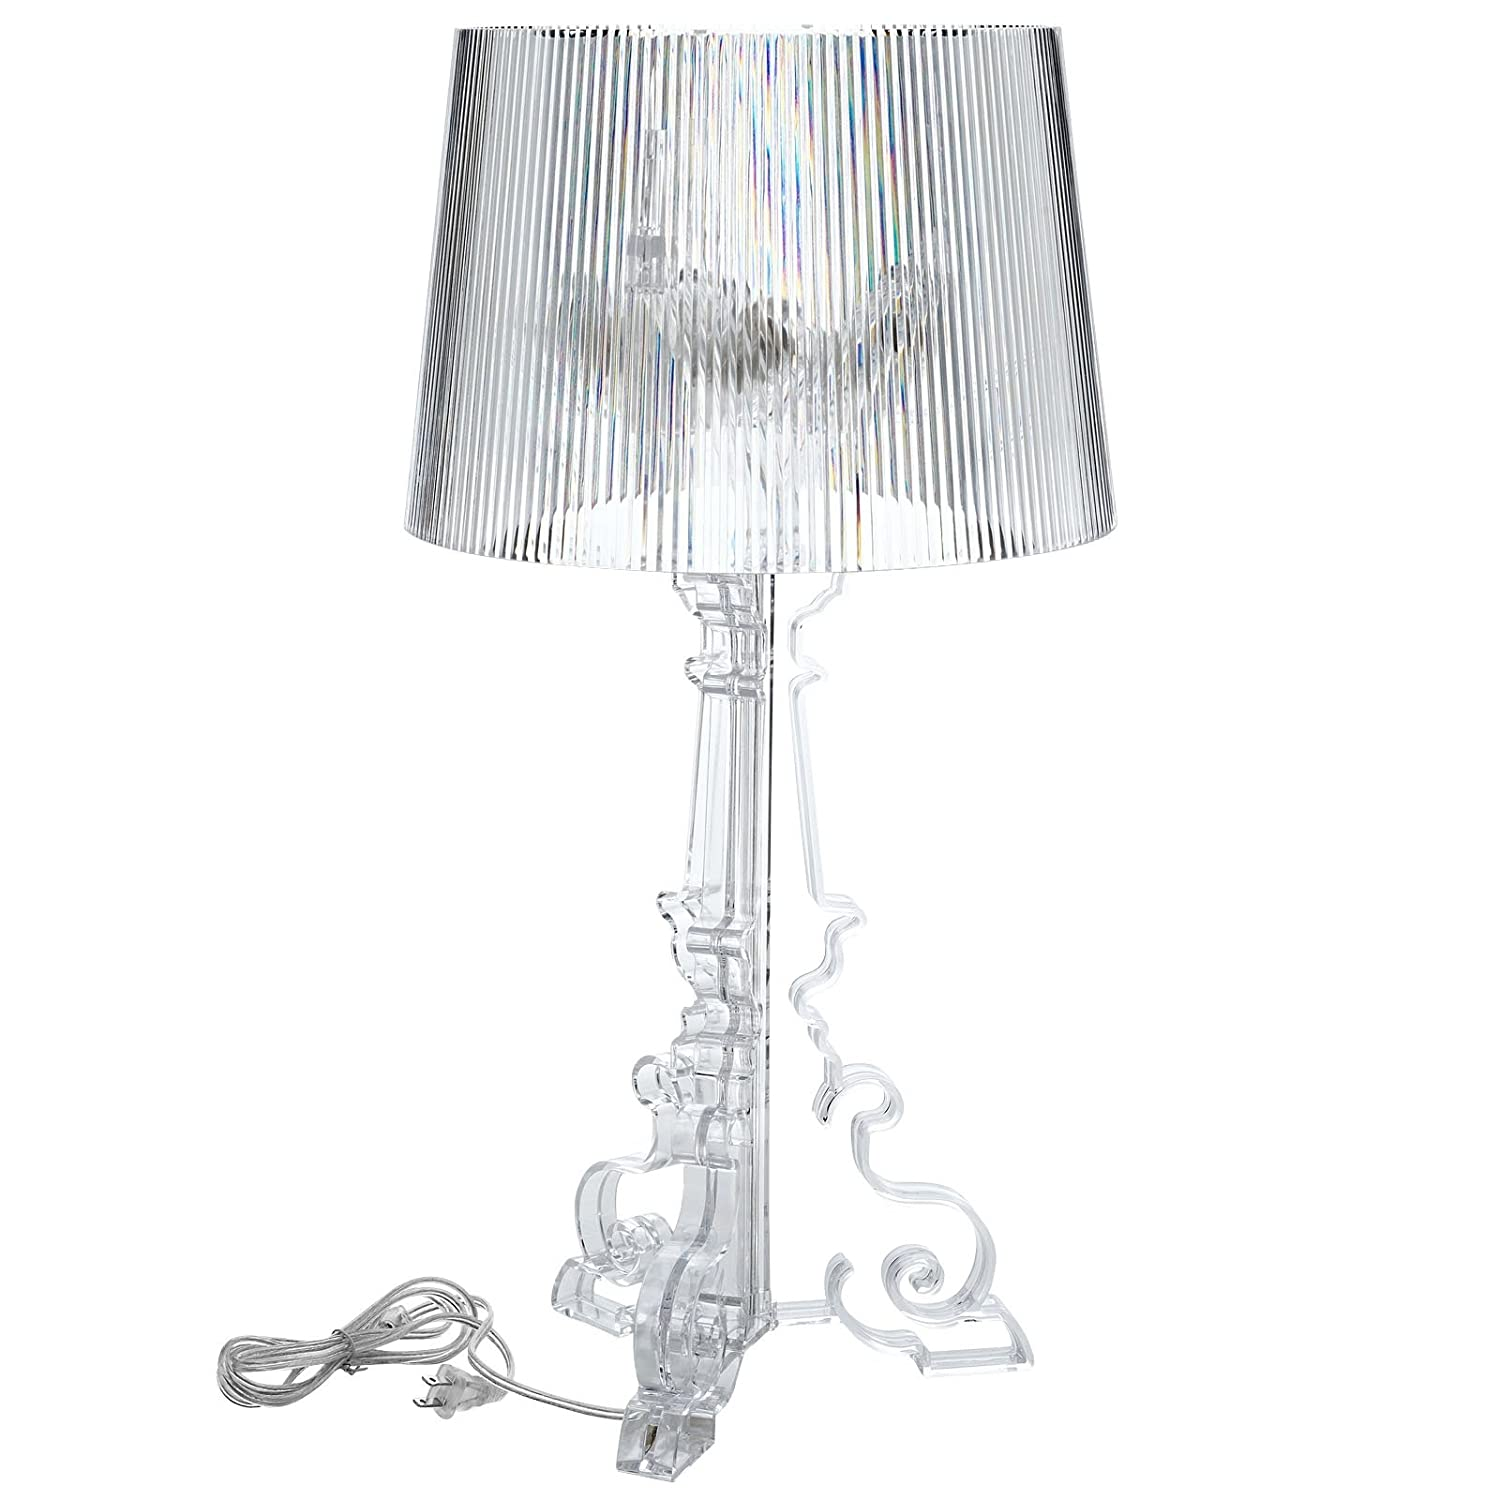 lexmod bourgie style acrylic table lamp in clear amazonca home  - lexmod bourgie style acrylic table lamp in clear amazonca home  kitchen